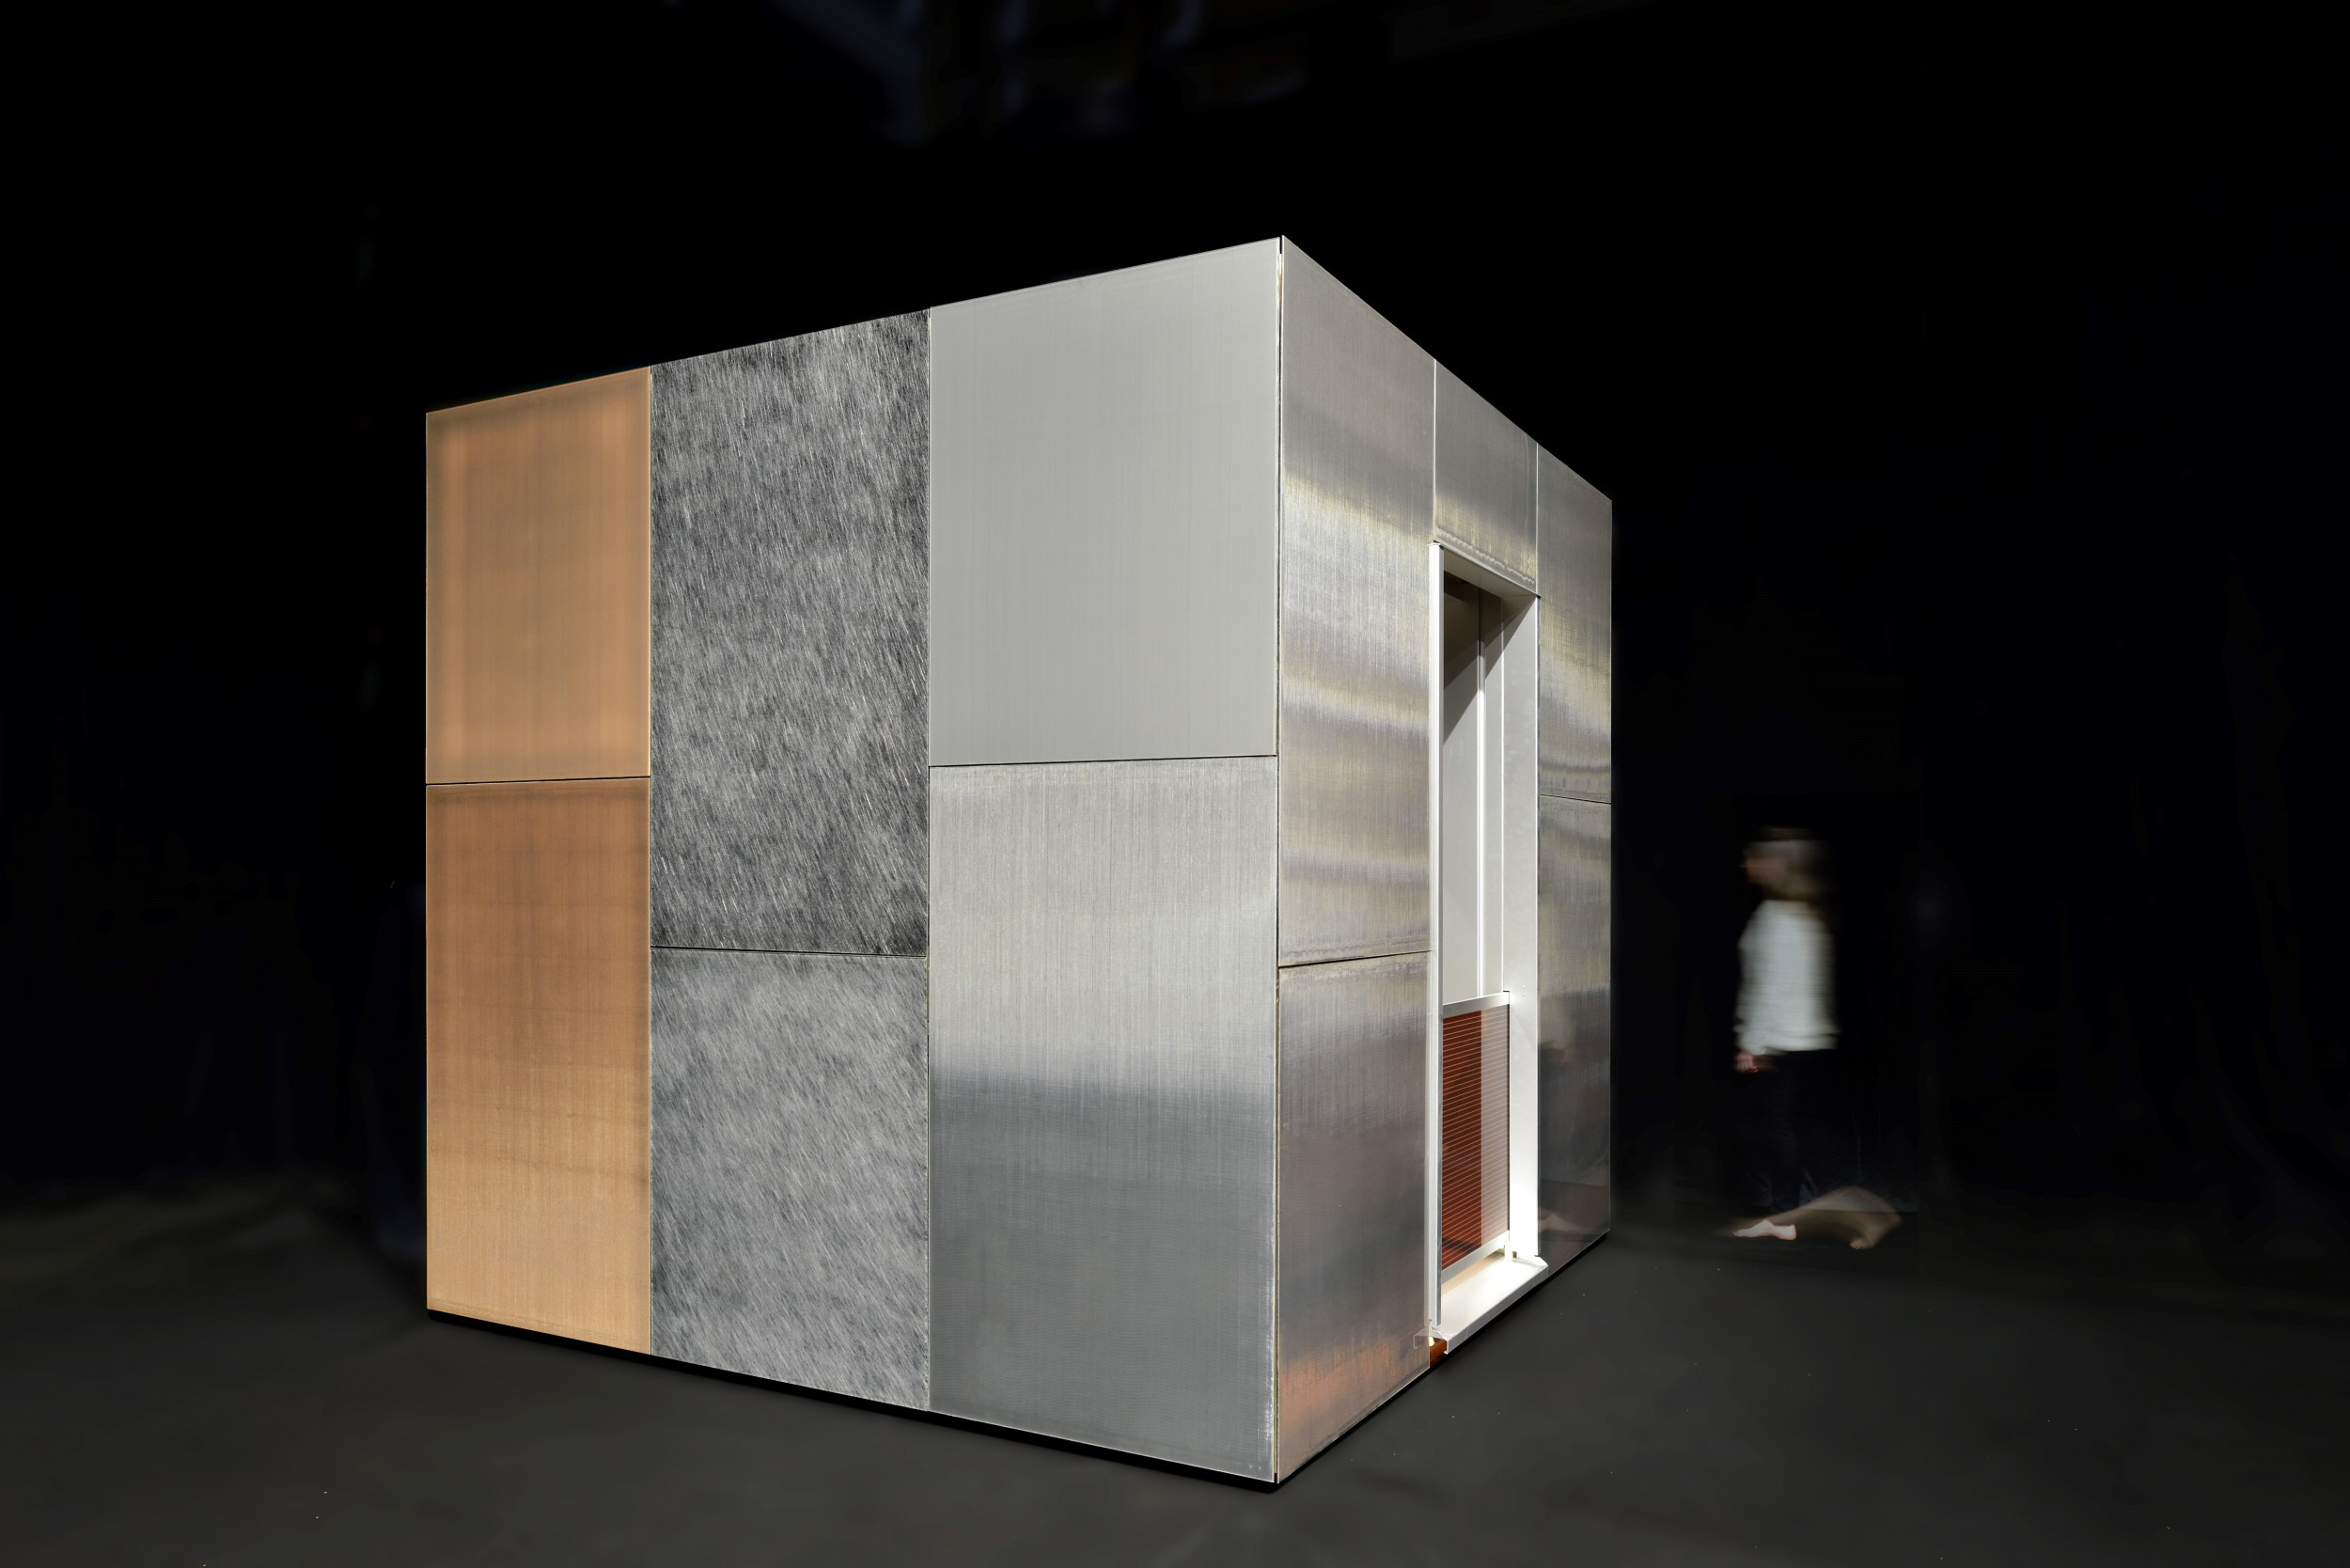 The demonstration cube shows the aesthetic and technical possibilities of new facade elements with integrated photovoltaics in their original scale.